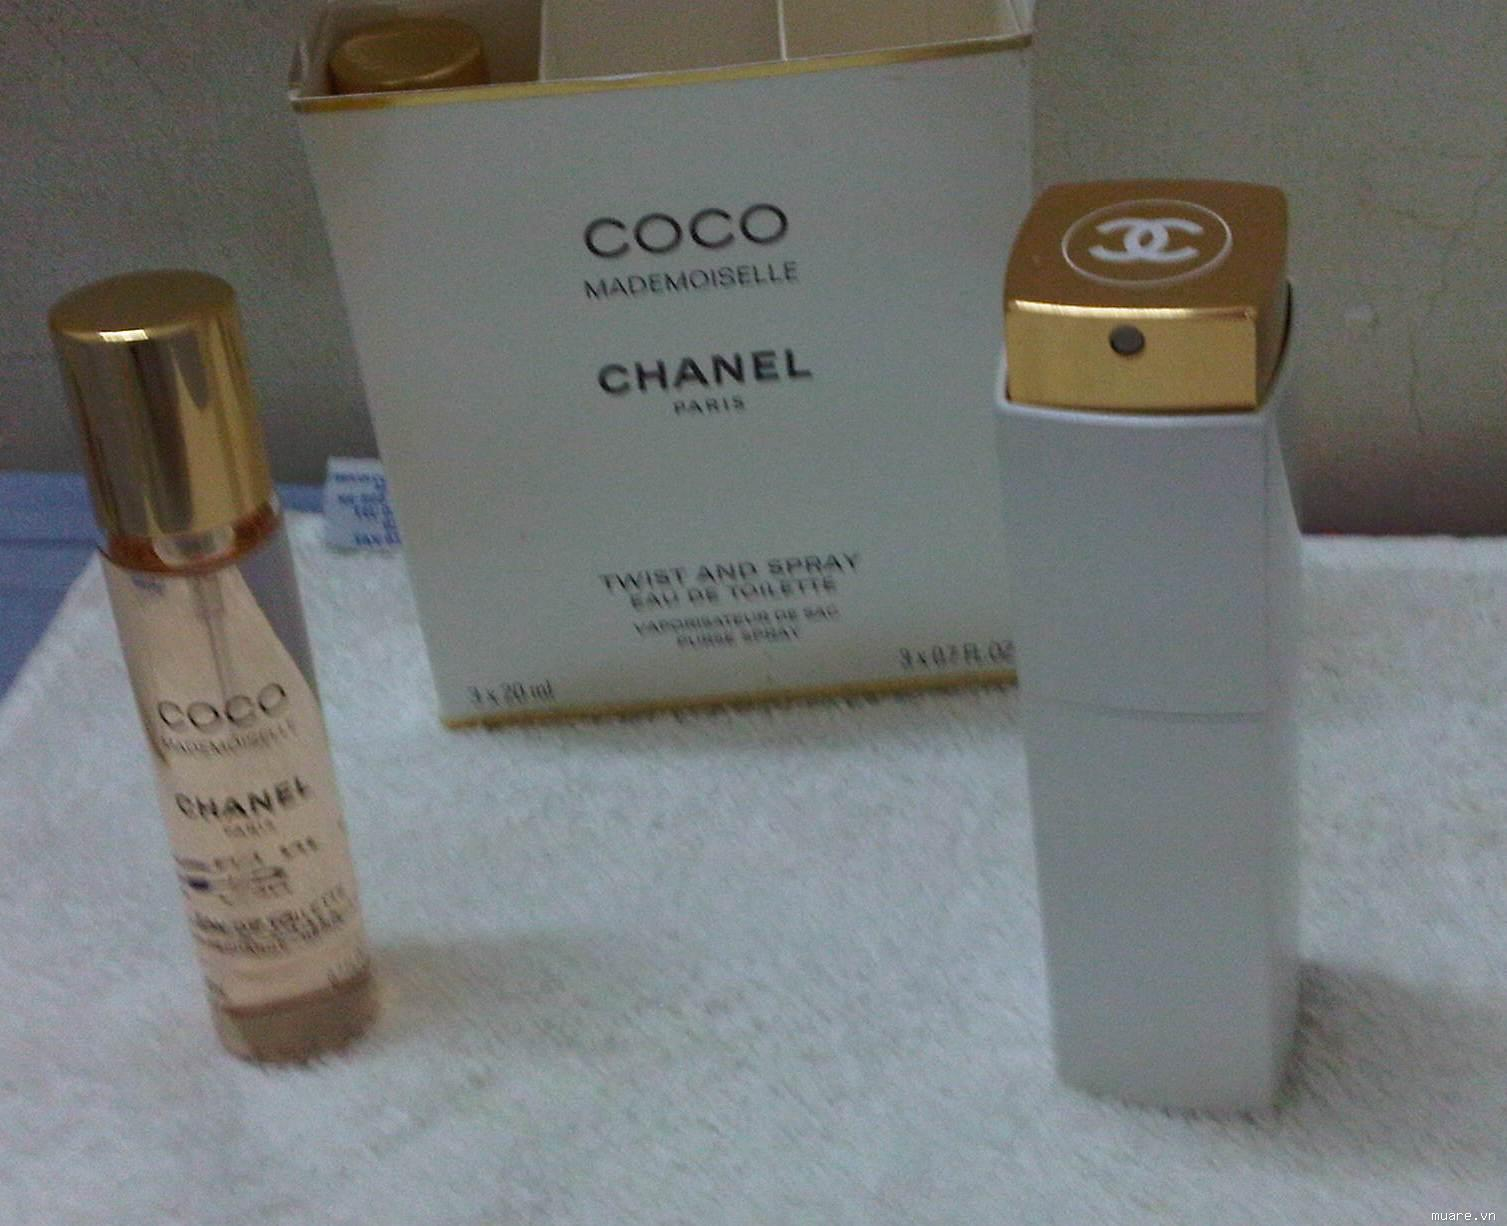 COCO MADEMOISELLE CHANEL 60ML Made in France Mua tai Phap